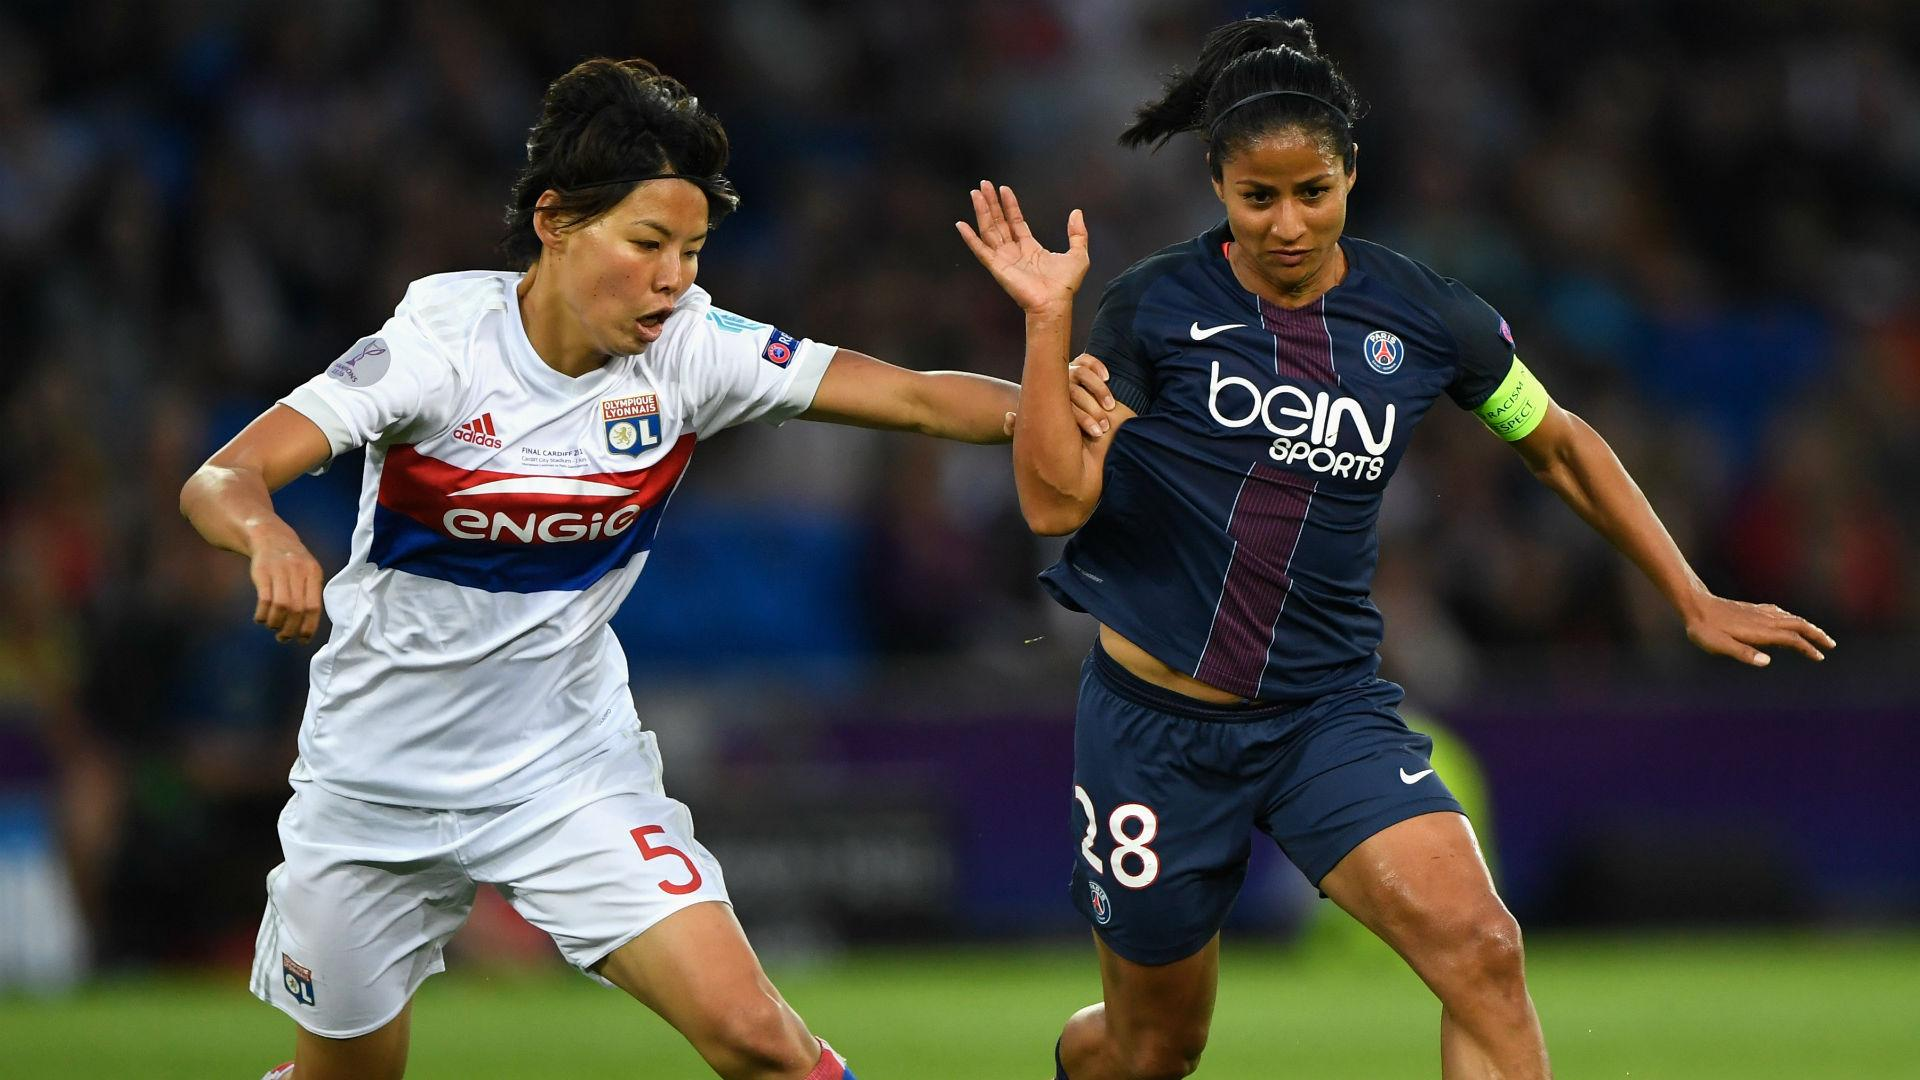 Lyon's women show Real Madrid the path in claiming consecutive